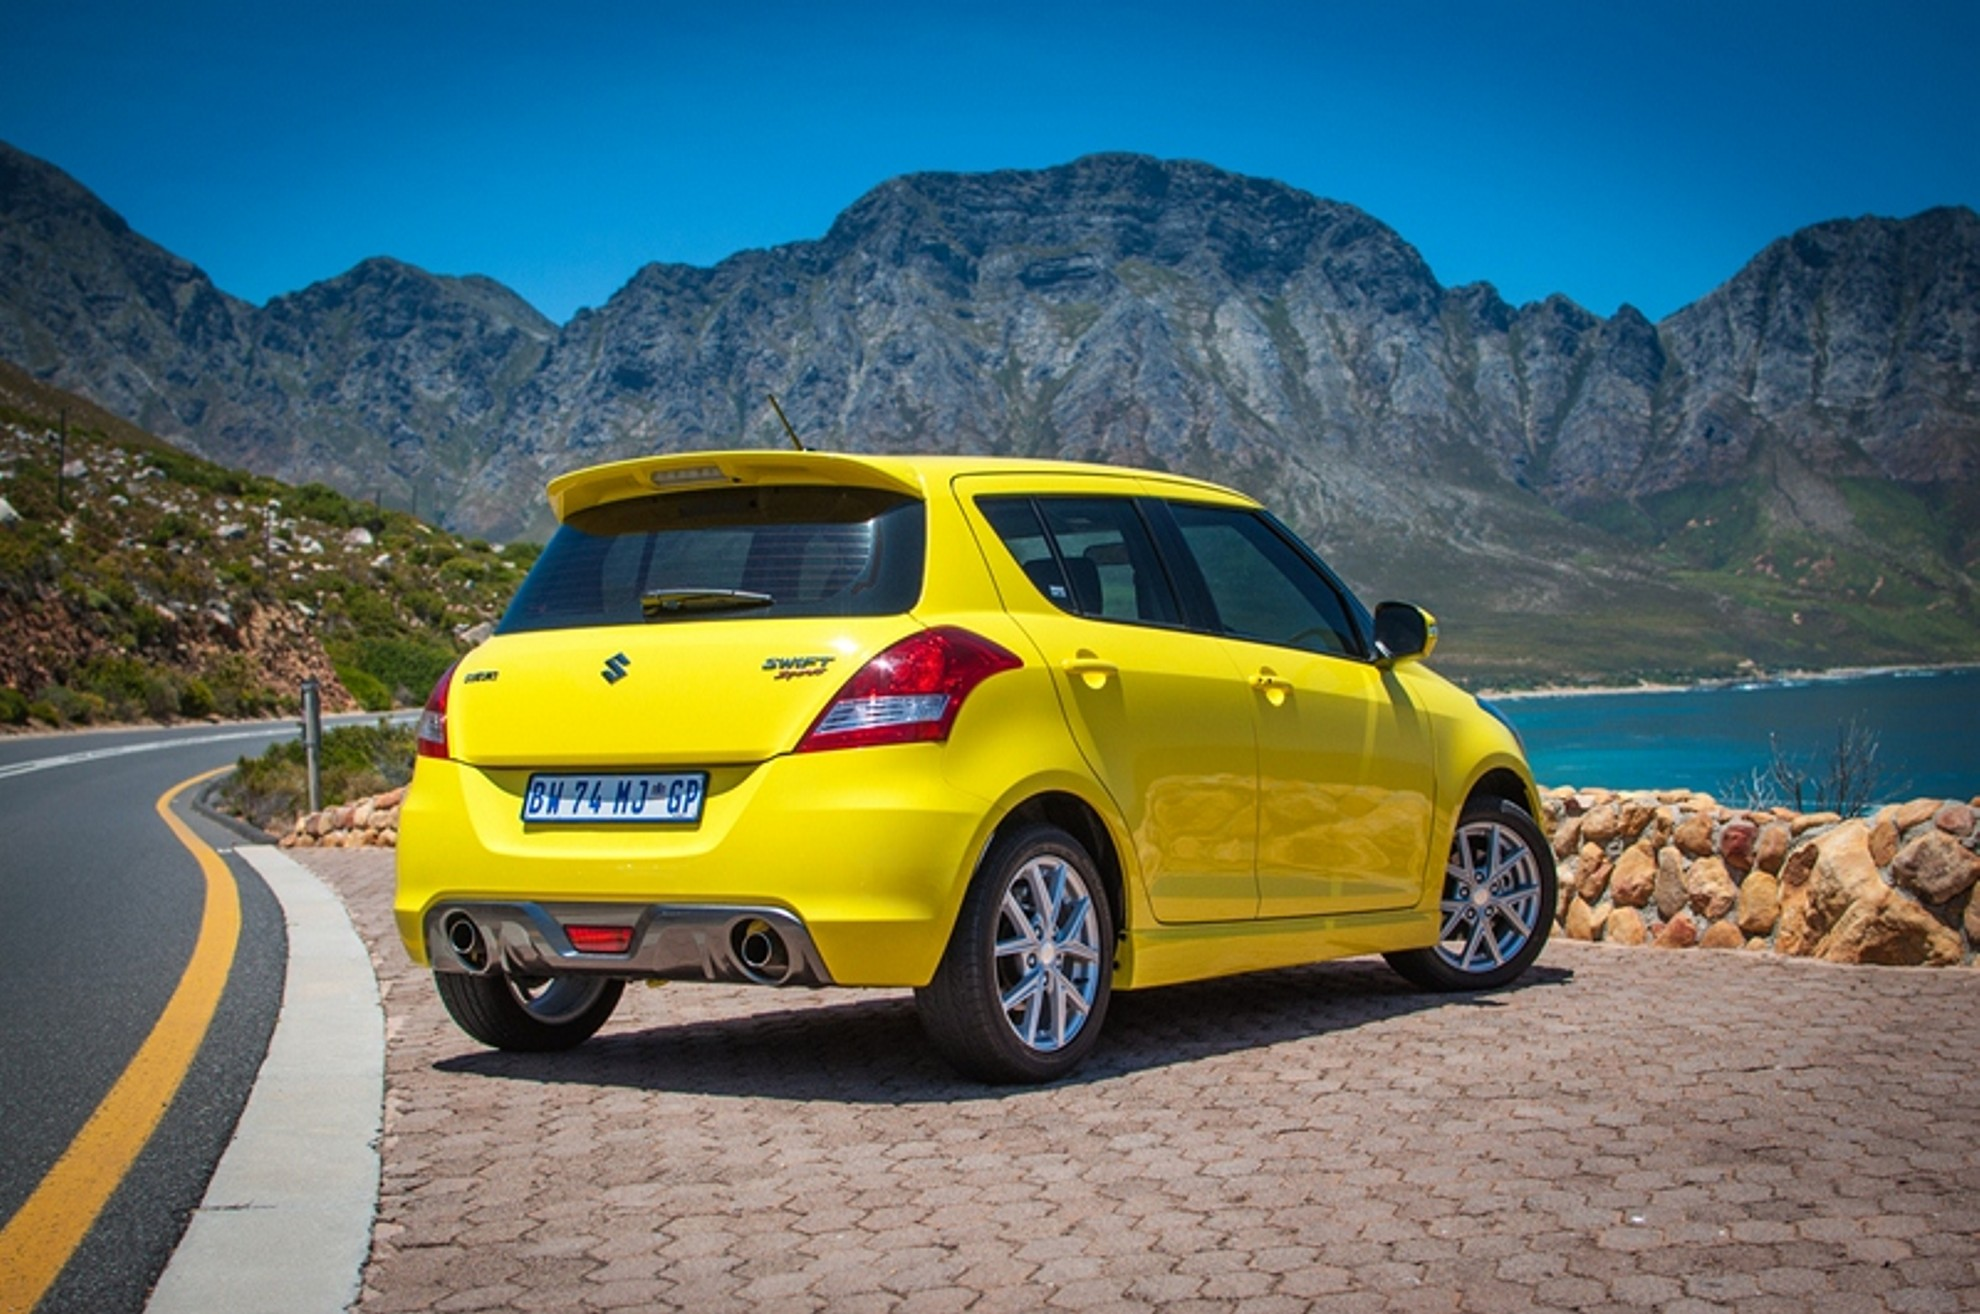 Suzuki Swift Car Sales